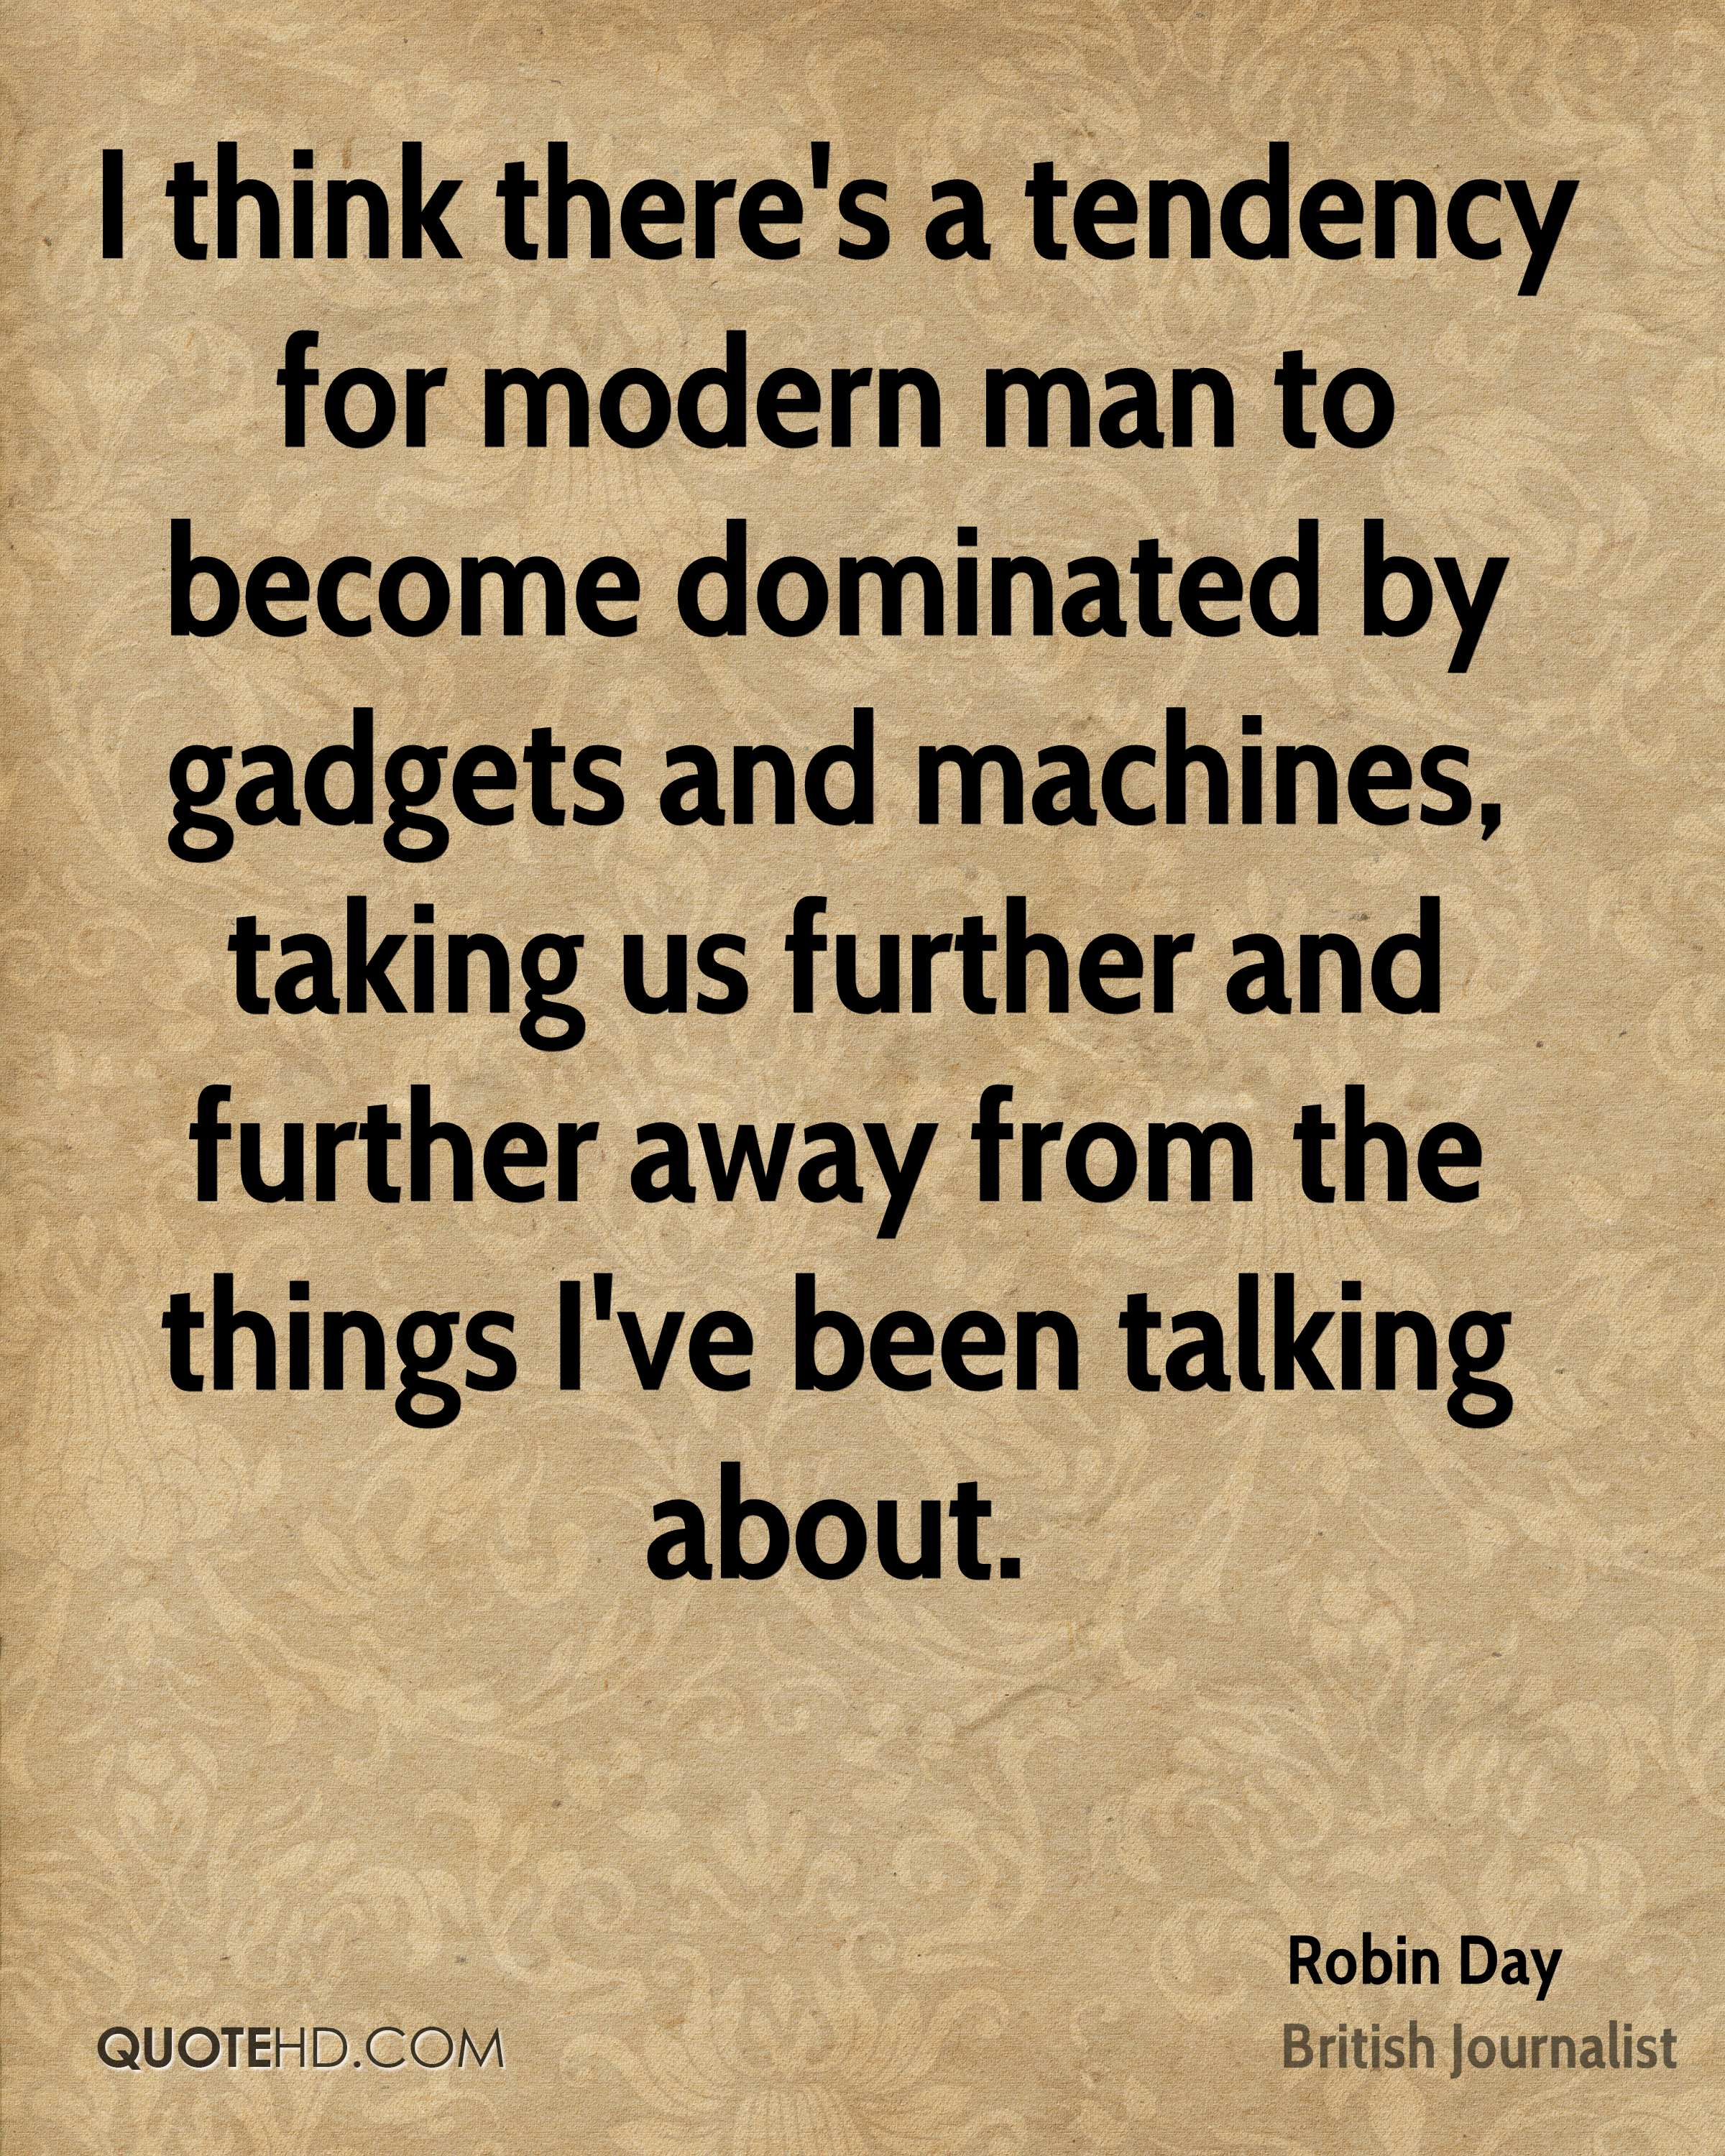 I think there's a tendency for modern man to become dominated by gadgets and machines, taking us further and further away from the things I've been talking about.